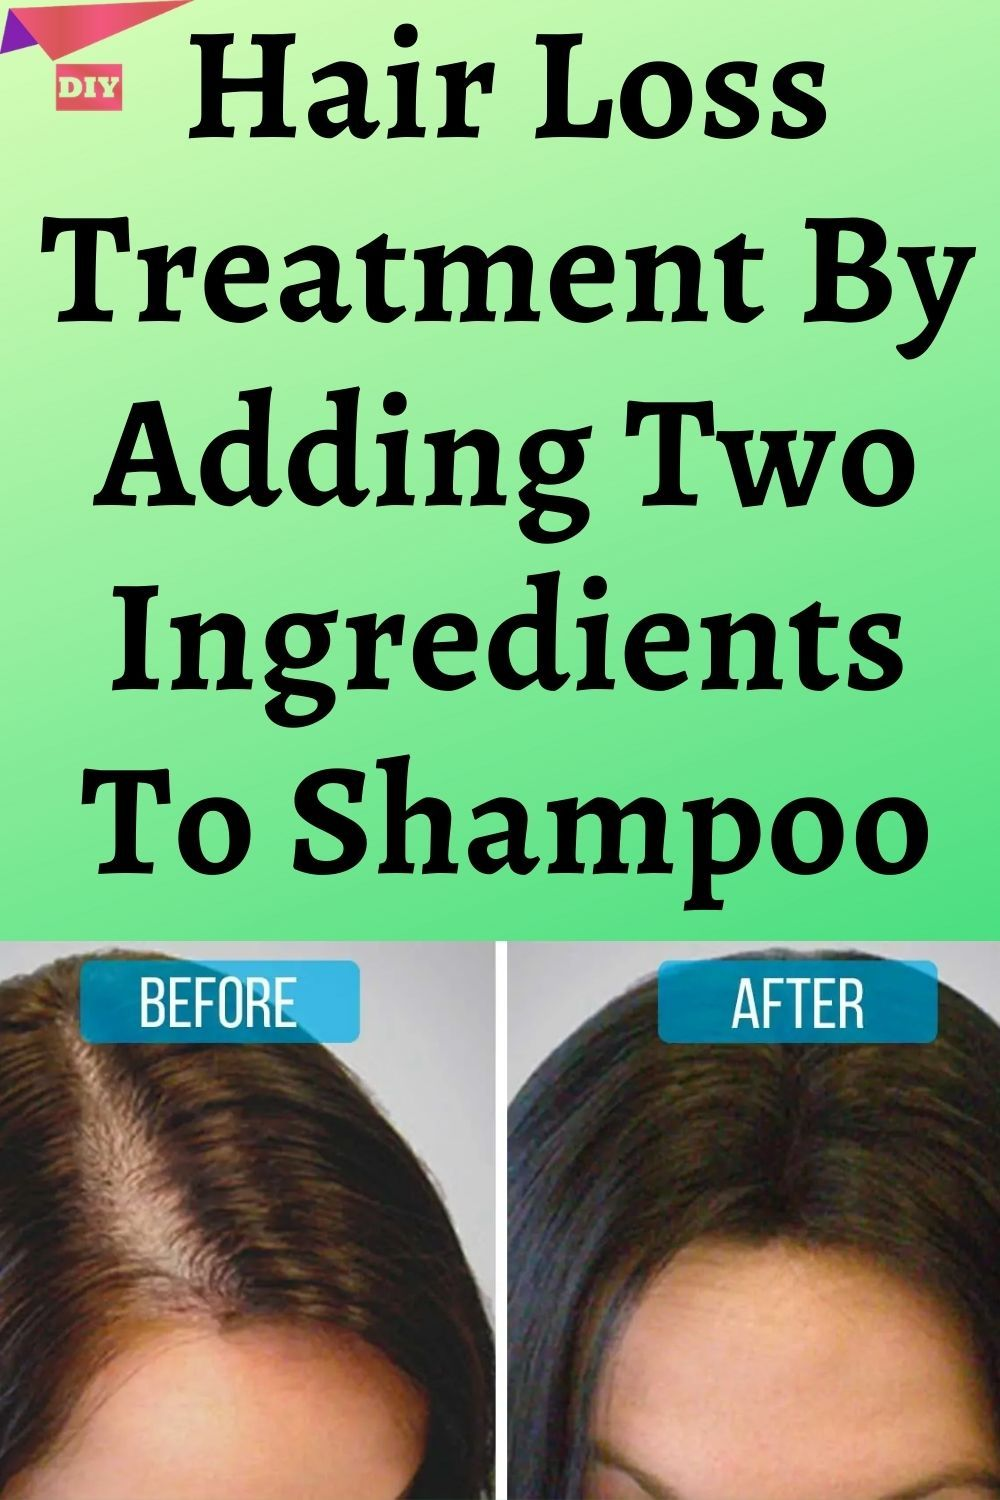 Hair Loss Treatment By Adding Two Ingredients To S